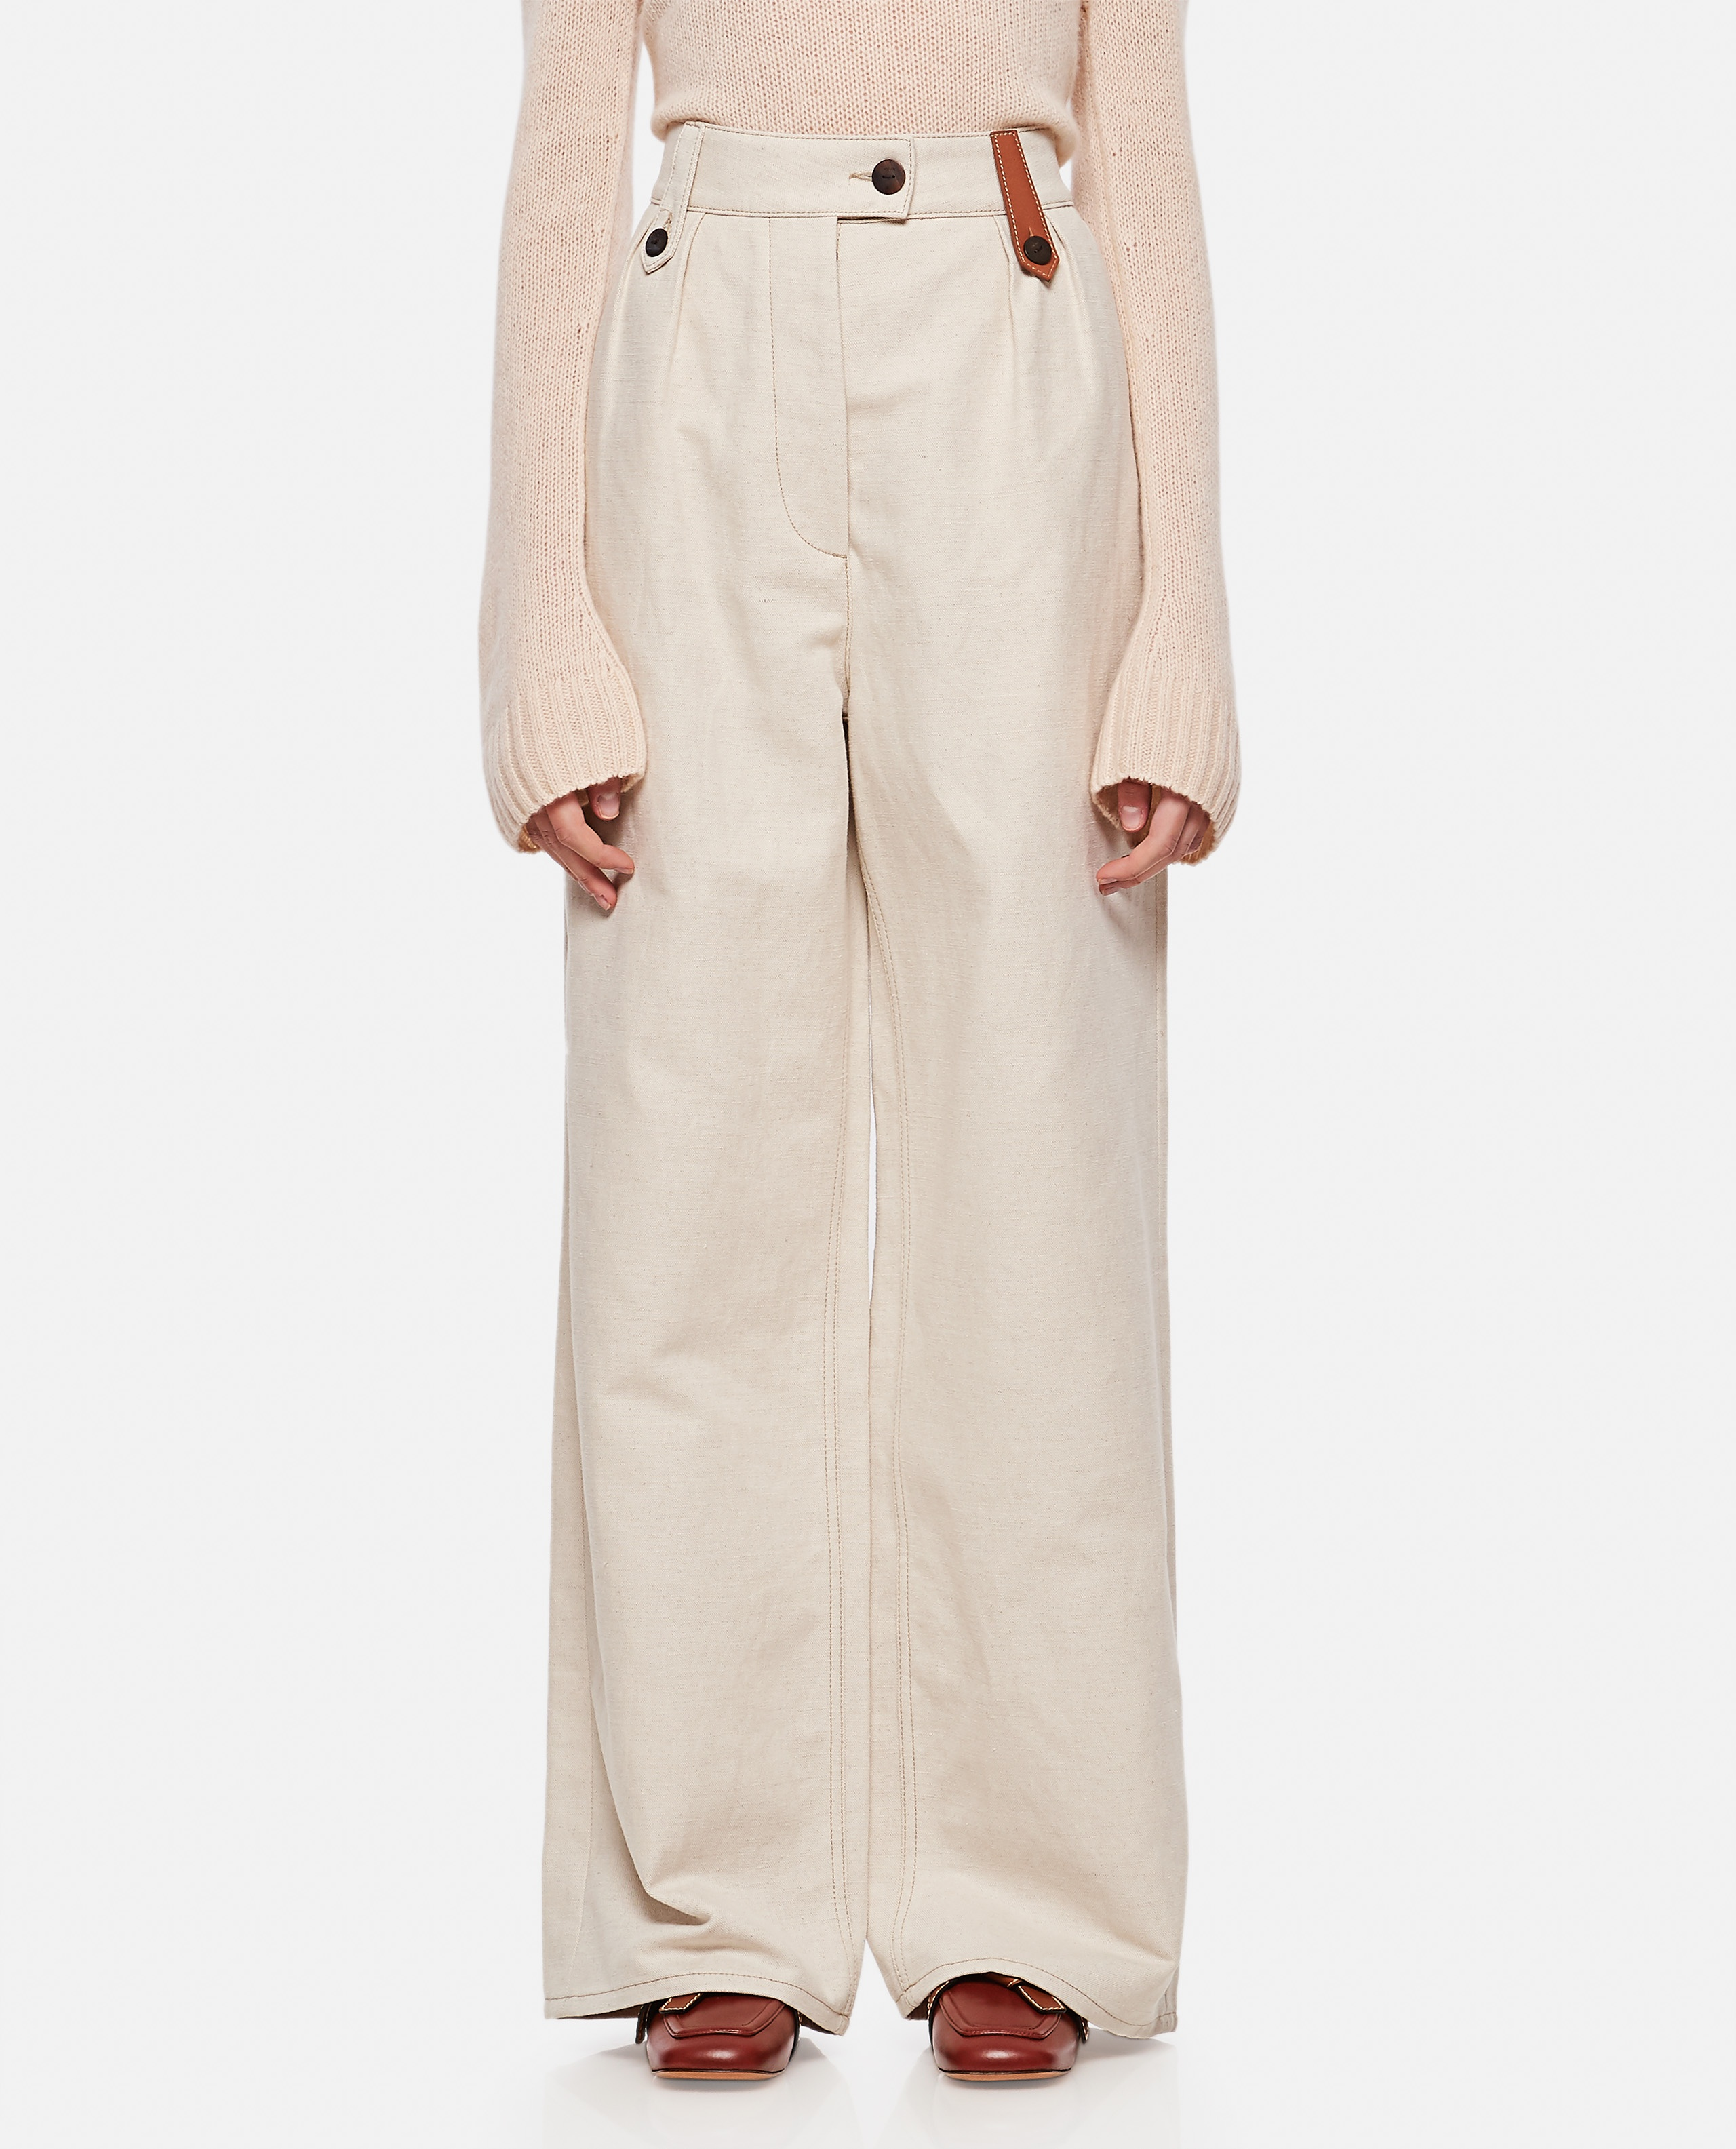 Flared trousers in cotton and linen Women Loewe 000320420046914 1